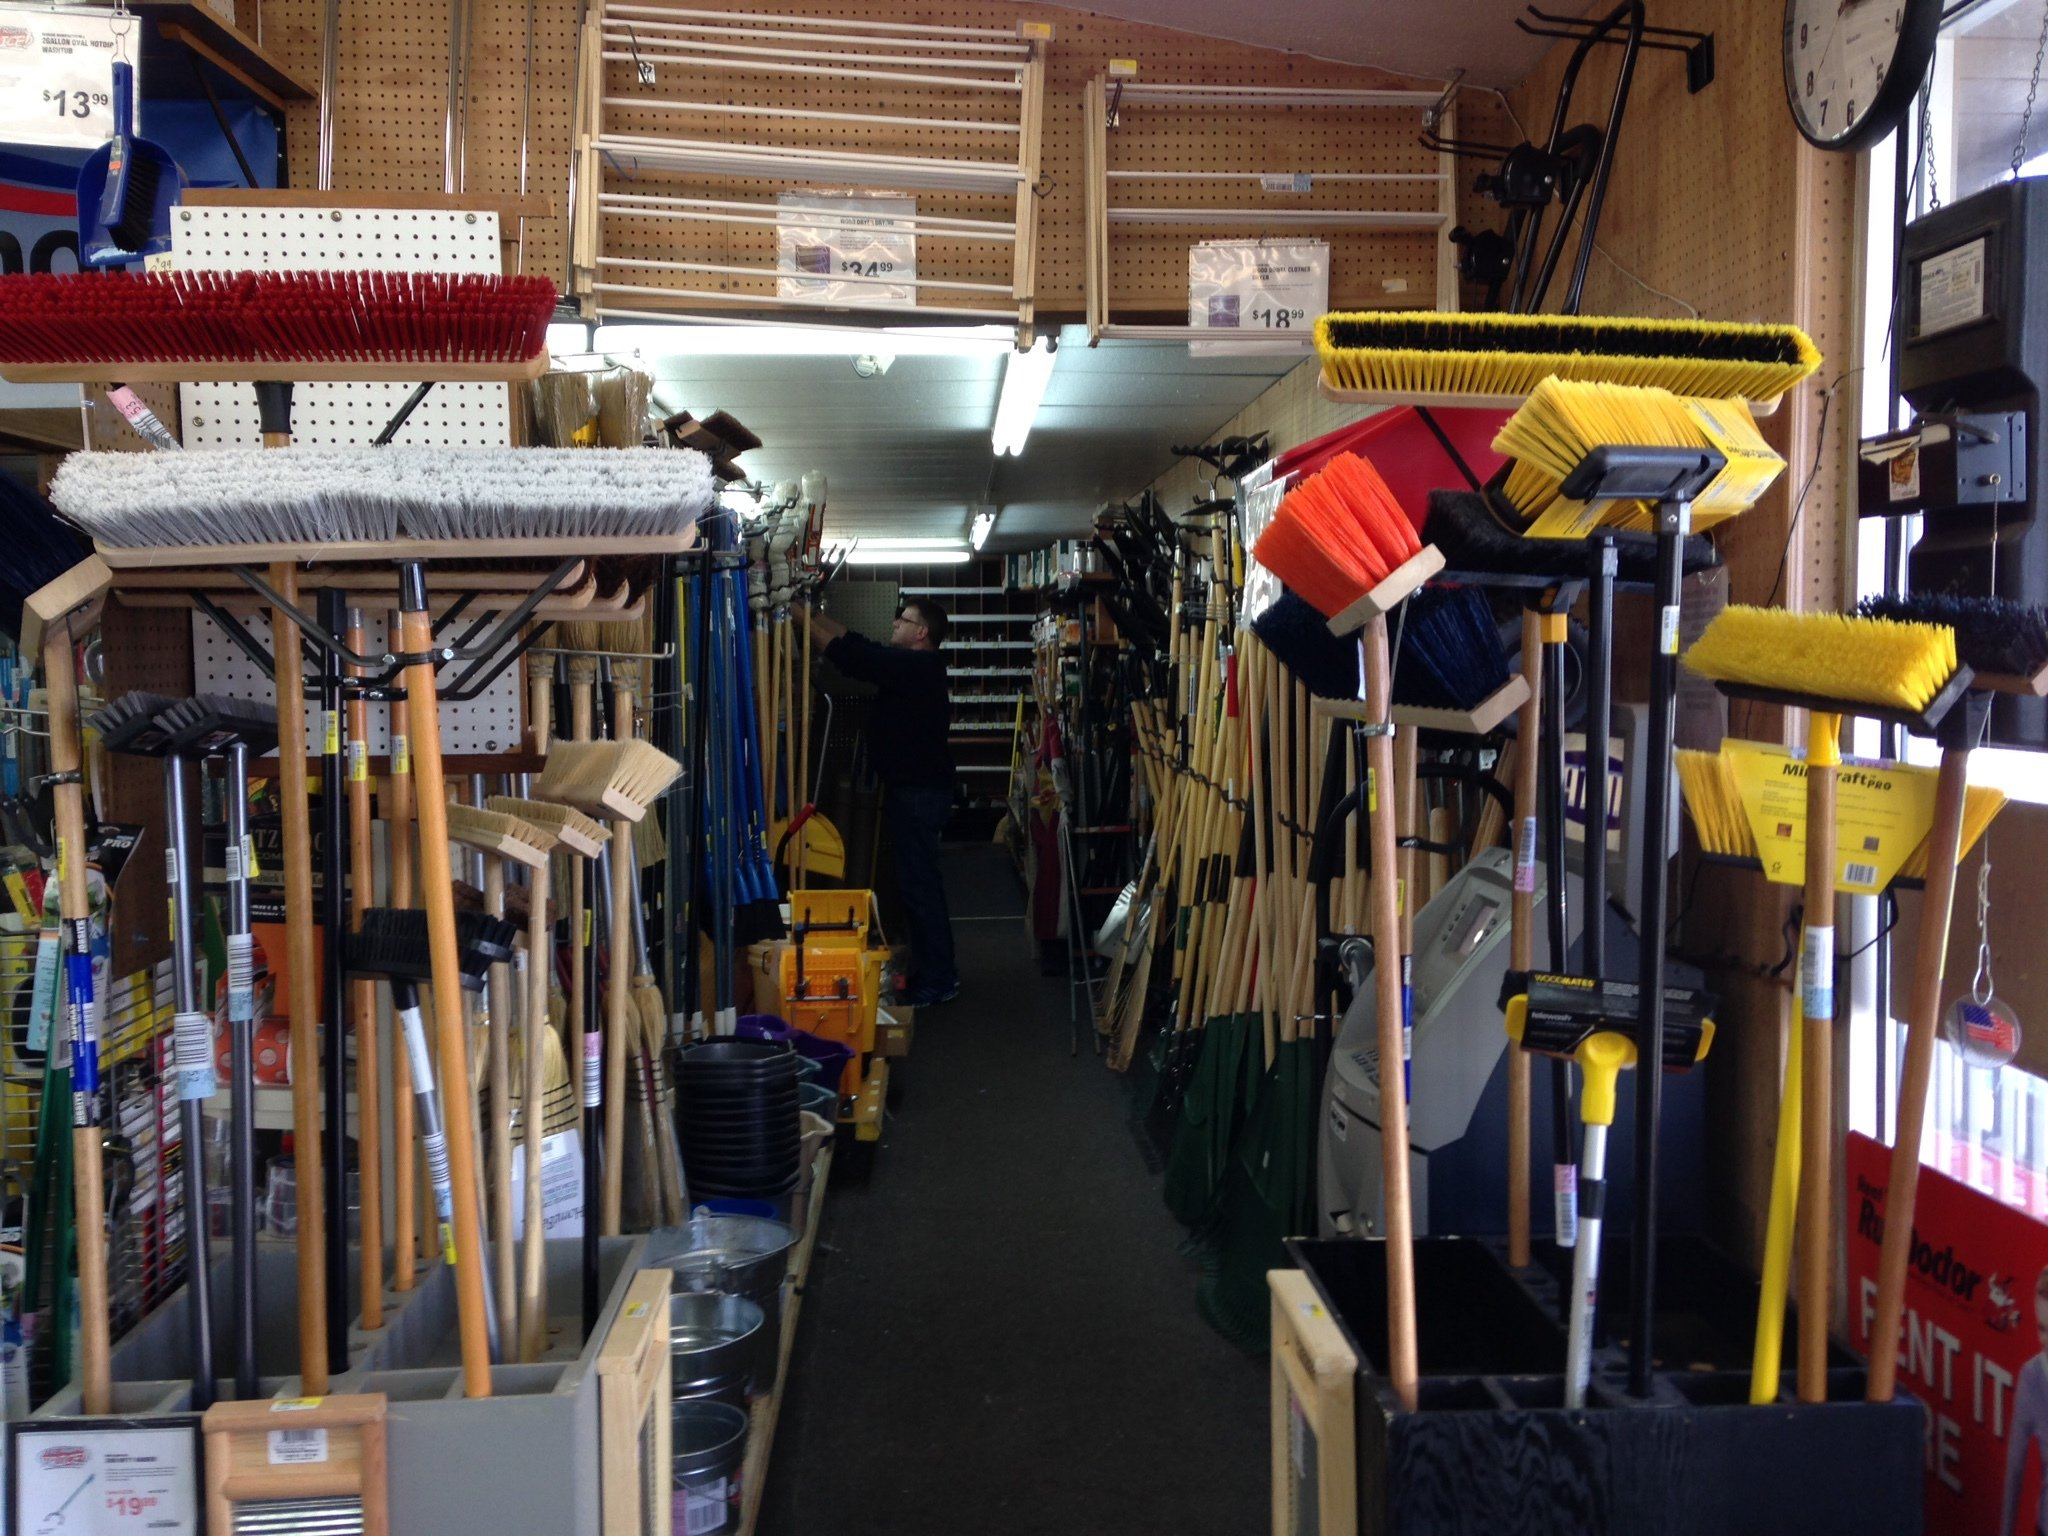 Just in time for Spring we have a new selection of Brooms, Rakes, and anything else you need for Spring Cleaning